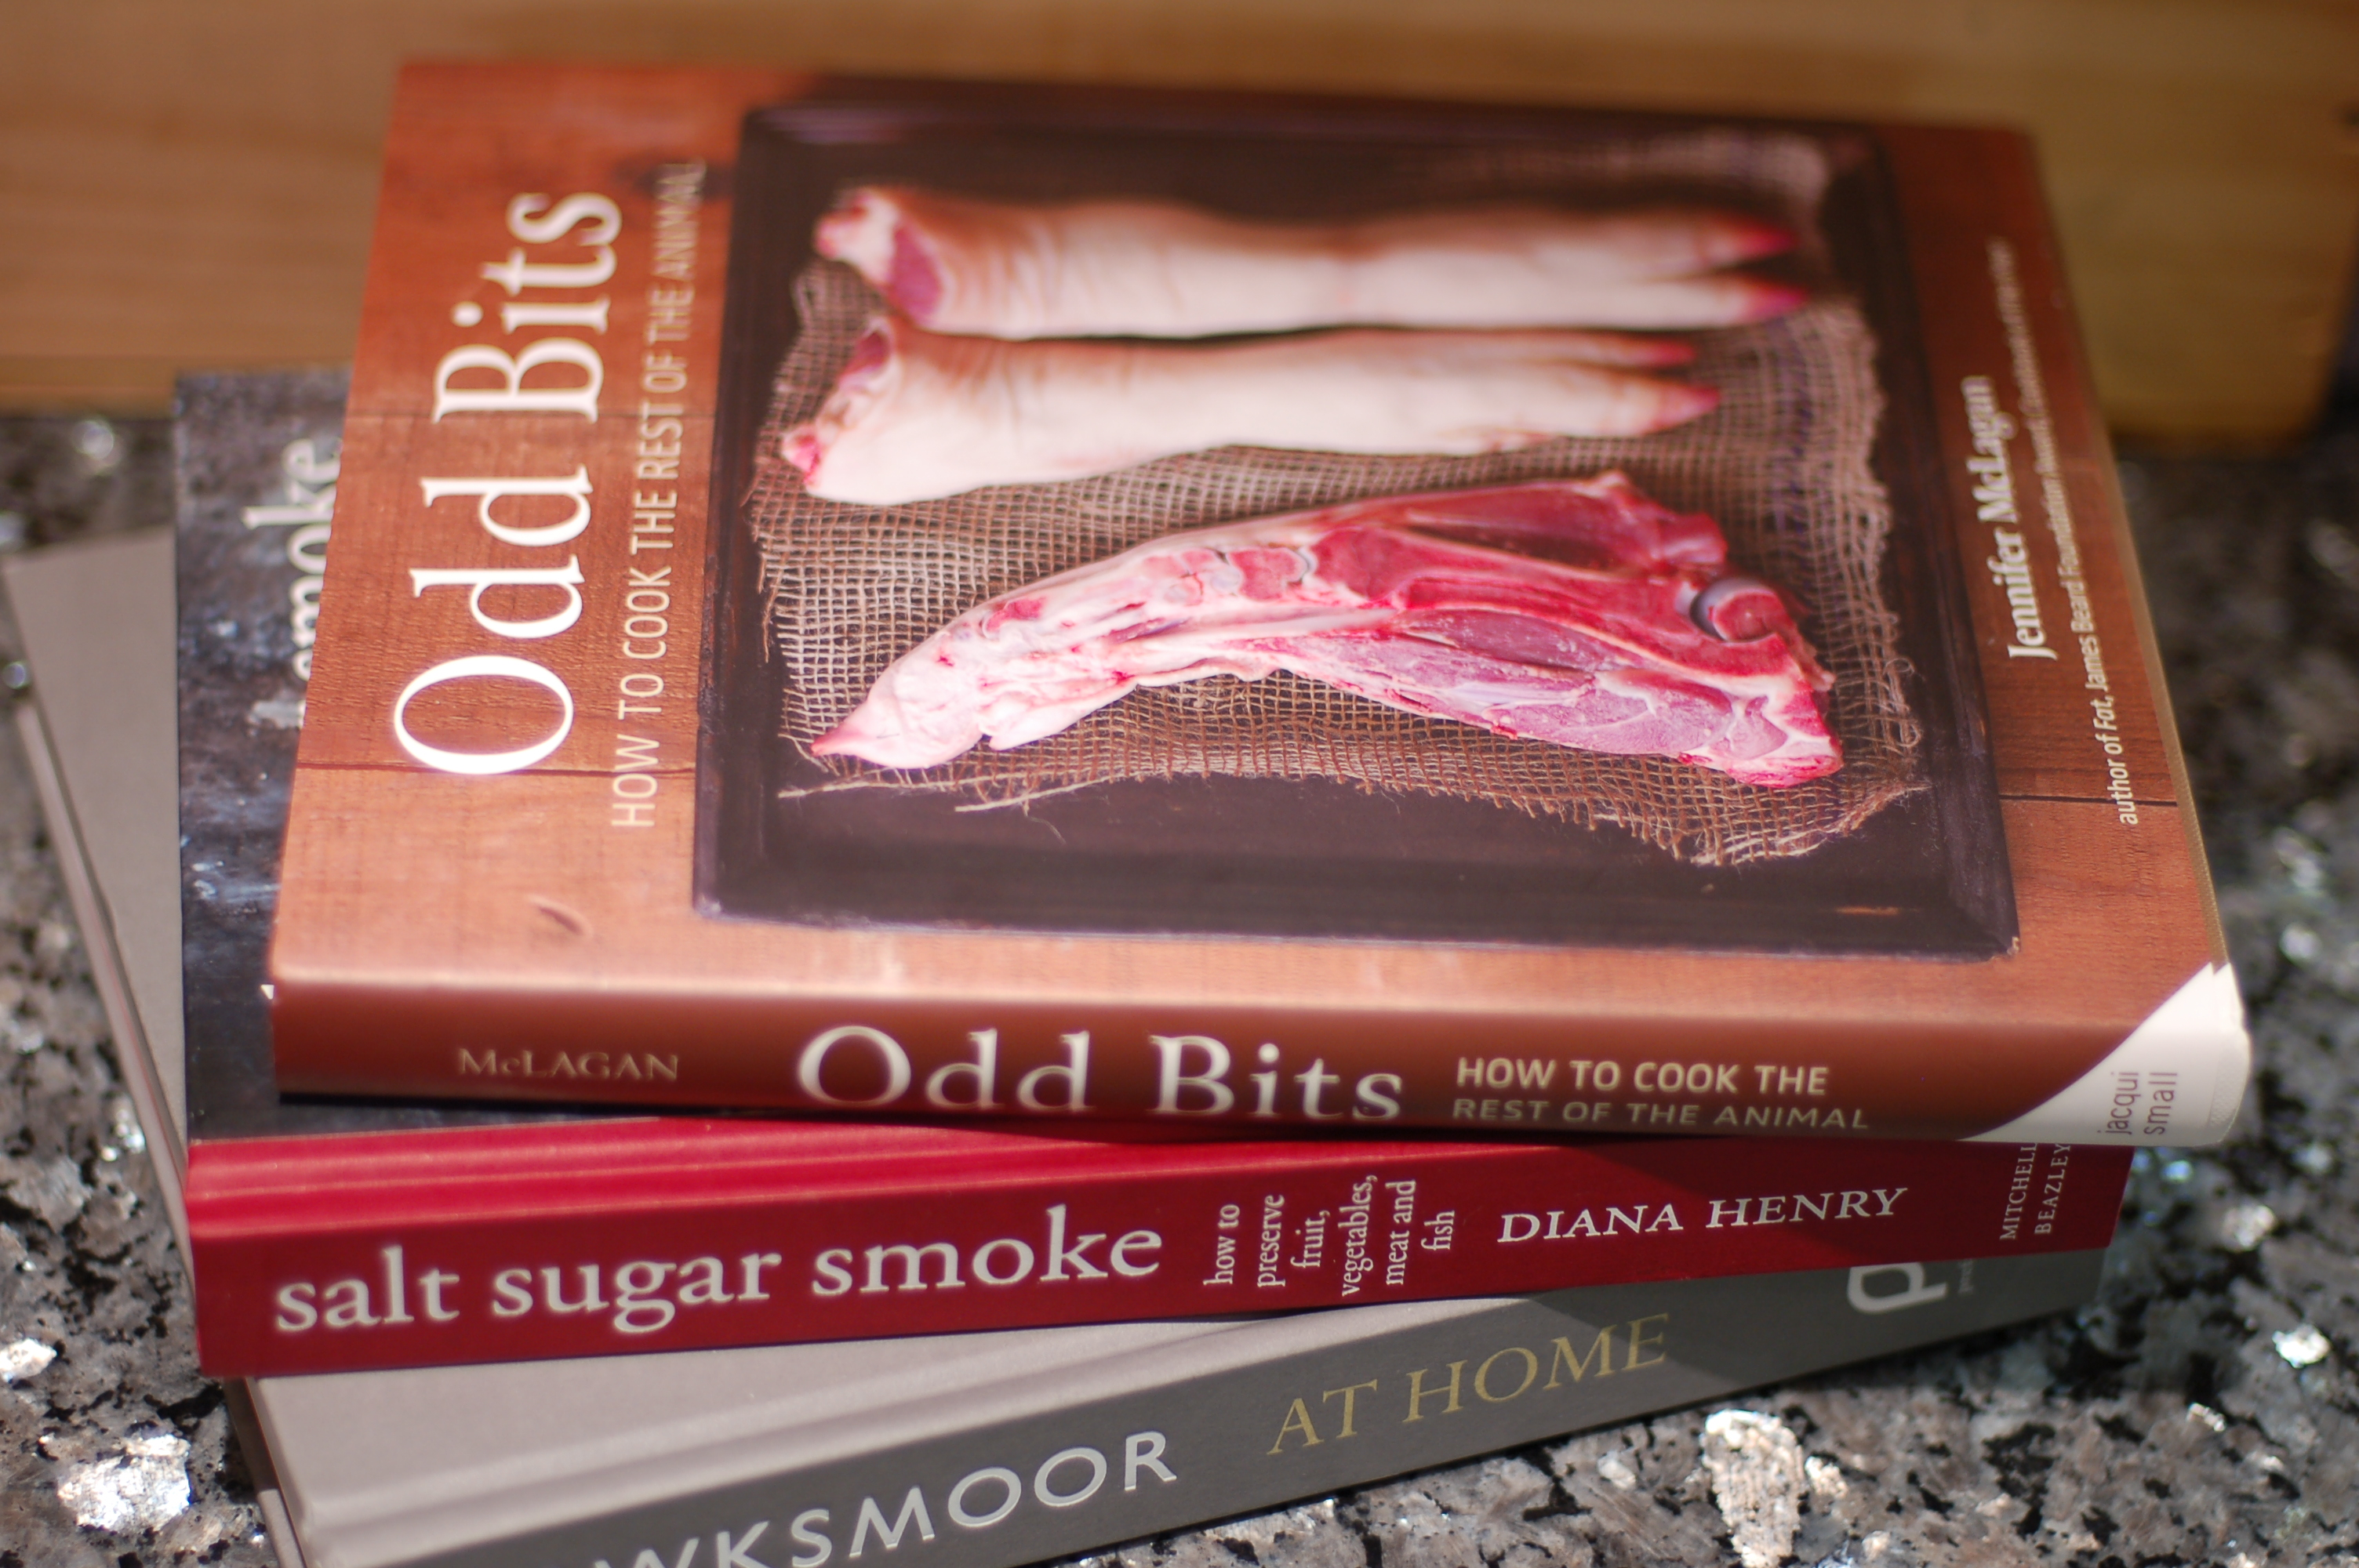 went on a bit of a cookbook binge at Books for Cooks